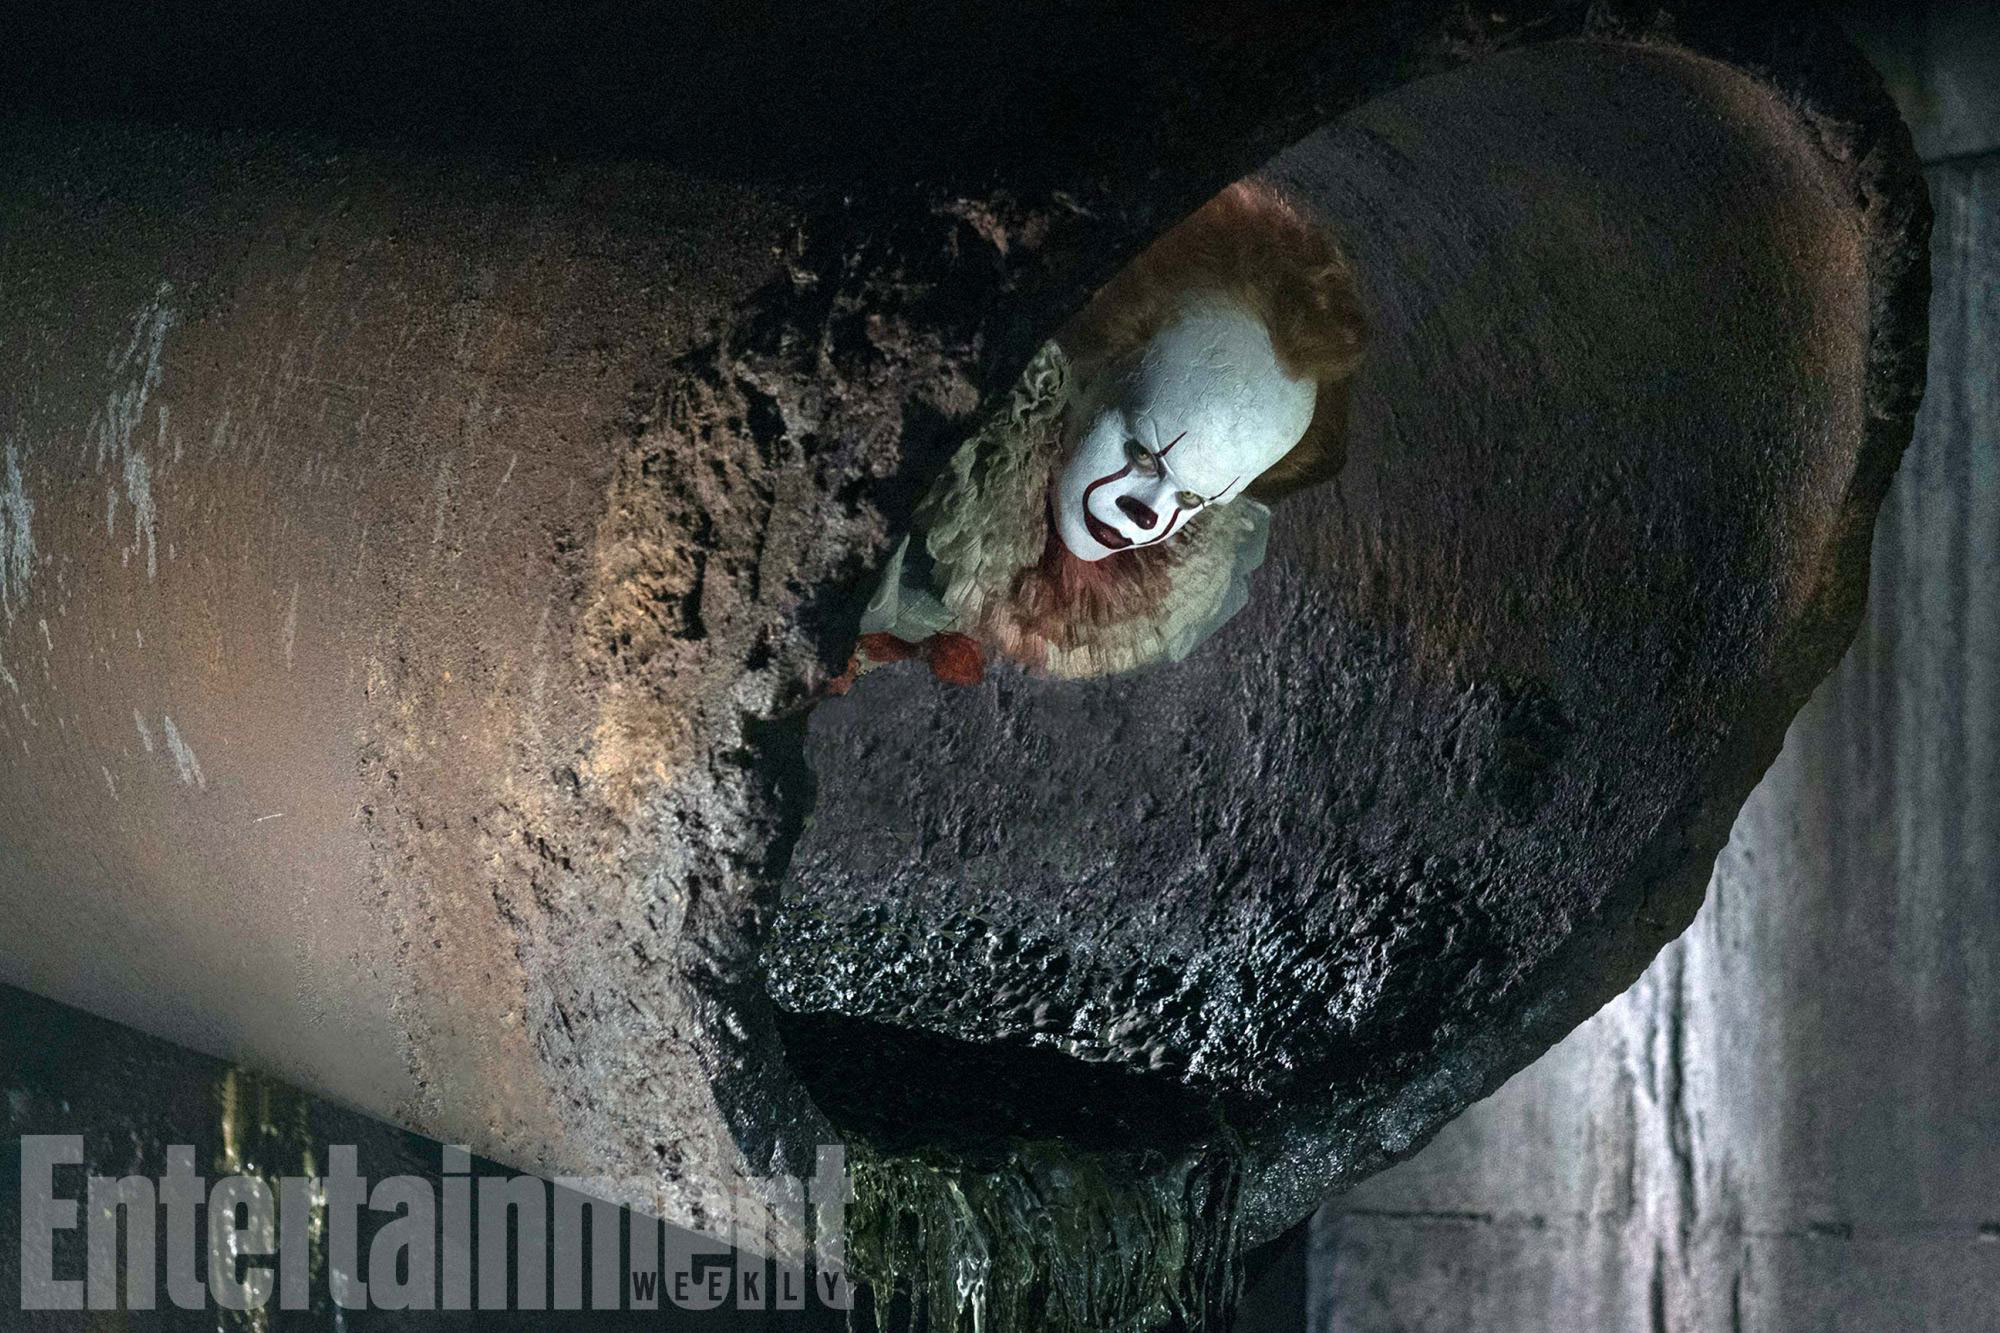 pennywise the clown image it movie new image hypebeast pennywise the clown sewer